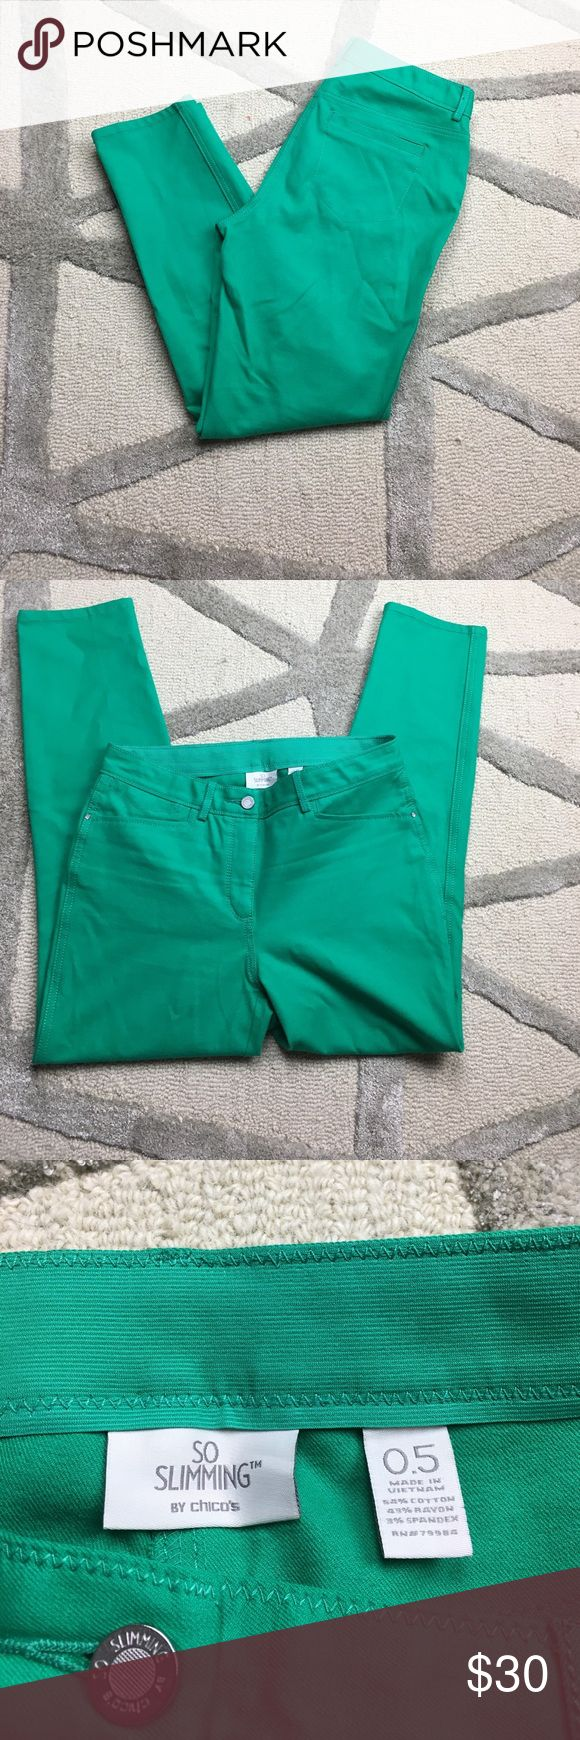 "Chicos So Slimming Green Ankle Length Pants Chicos So Slimming Green Ankle Length Pants. In excellent used condition. With Slimming elastic material on inner waistband. In a chicos size 0.5. Please ask any questions. Inseam measures 28"". Chico's Pants Ankle & Cropped"